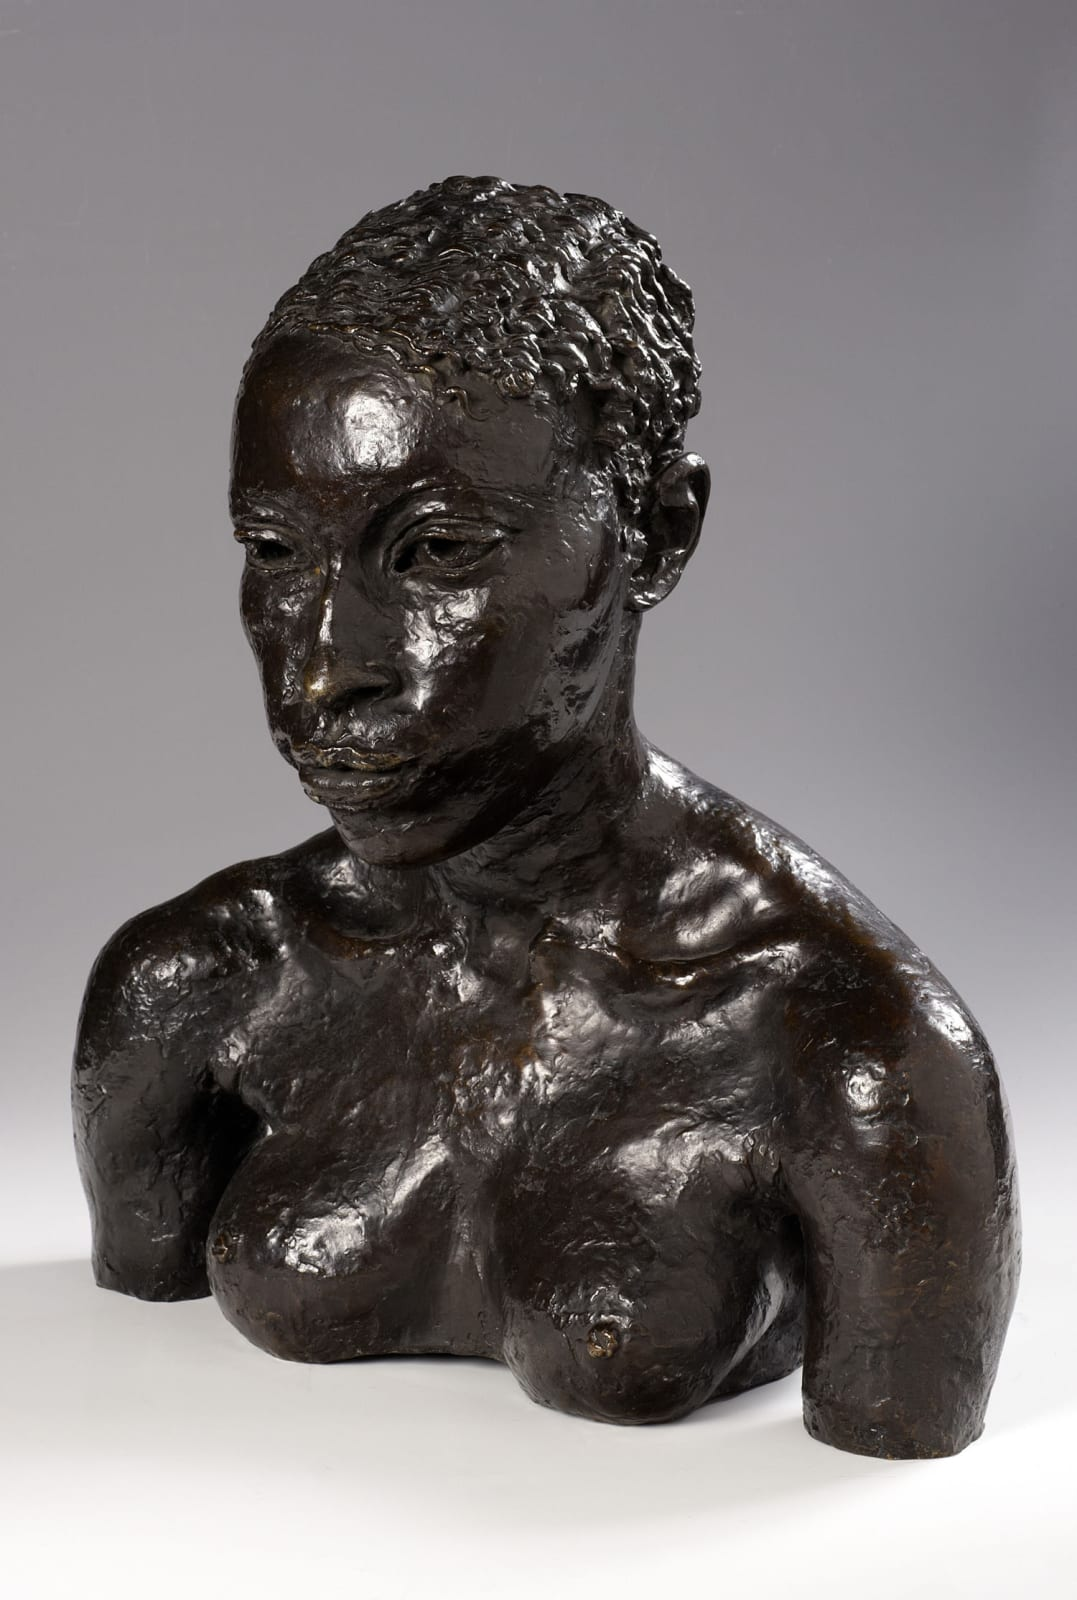 Lydia by Jacob Epstein (1880-1959), 1931. Sculpture.